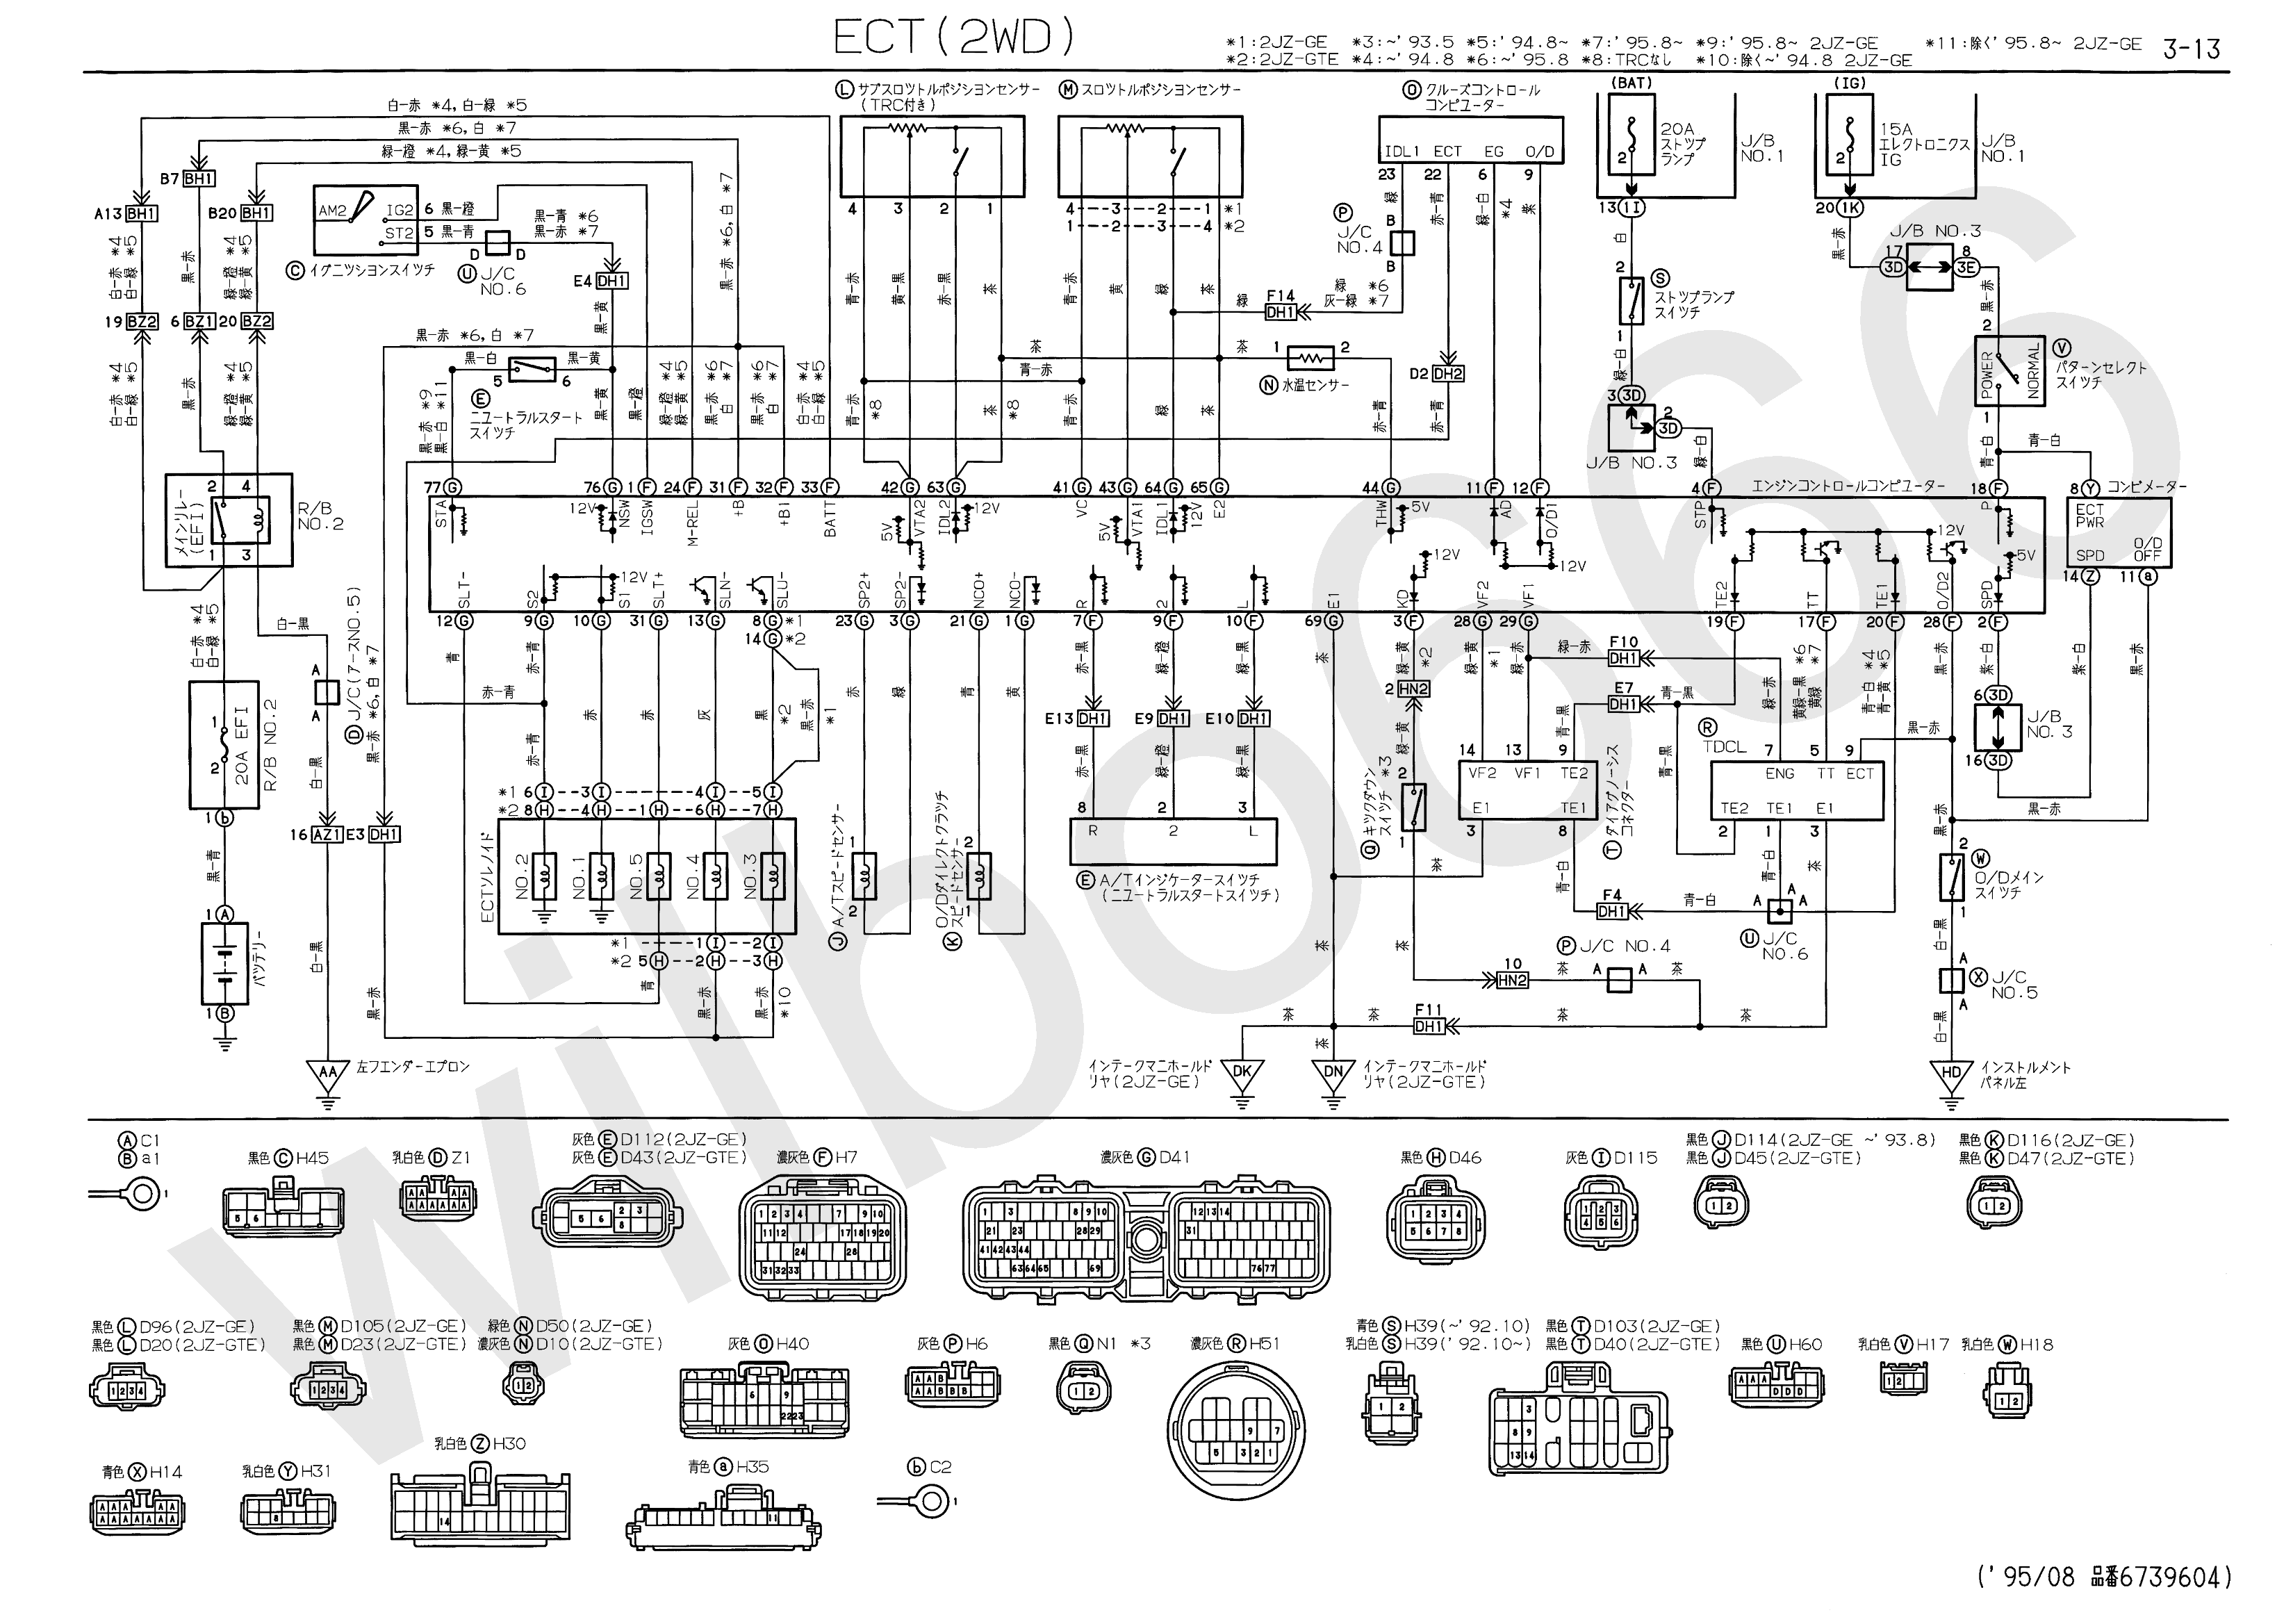 2jz wiring diagram 2005 kenworth w900 diagrams wilbo666 gte jzs147 aristo engine